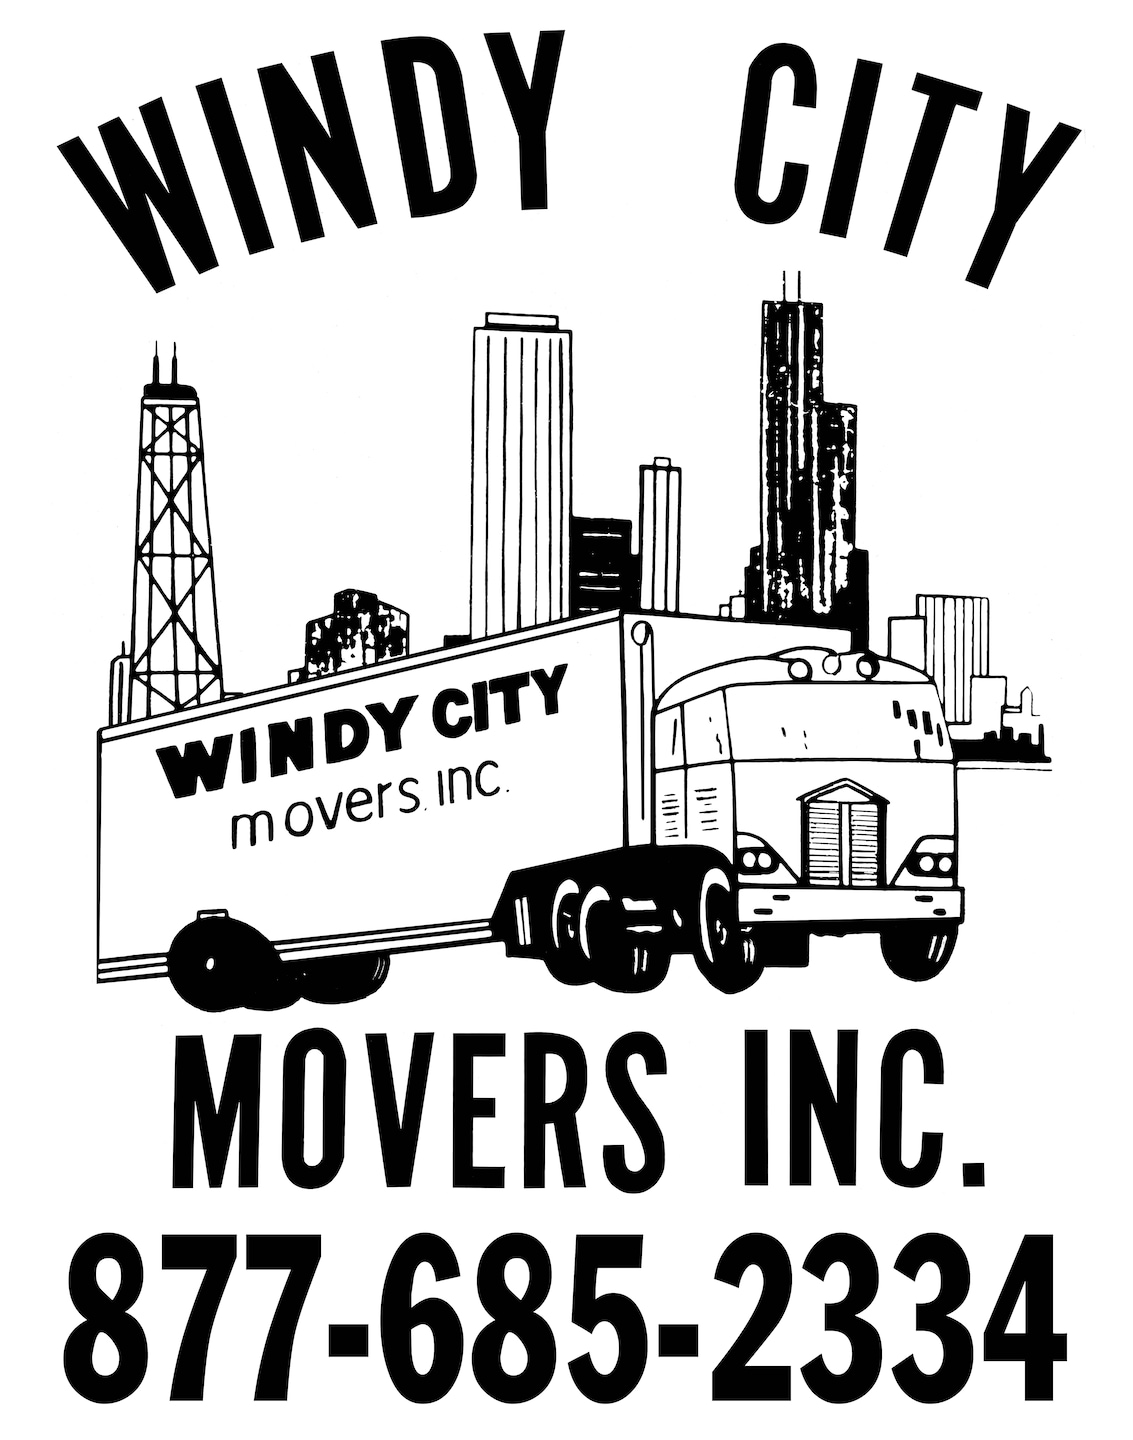 Windy City Movers Inc logo